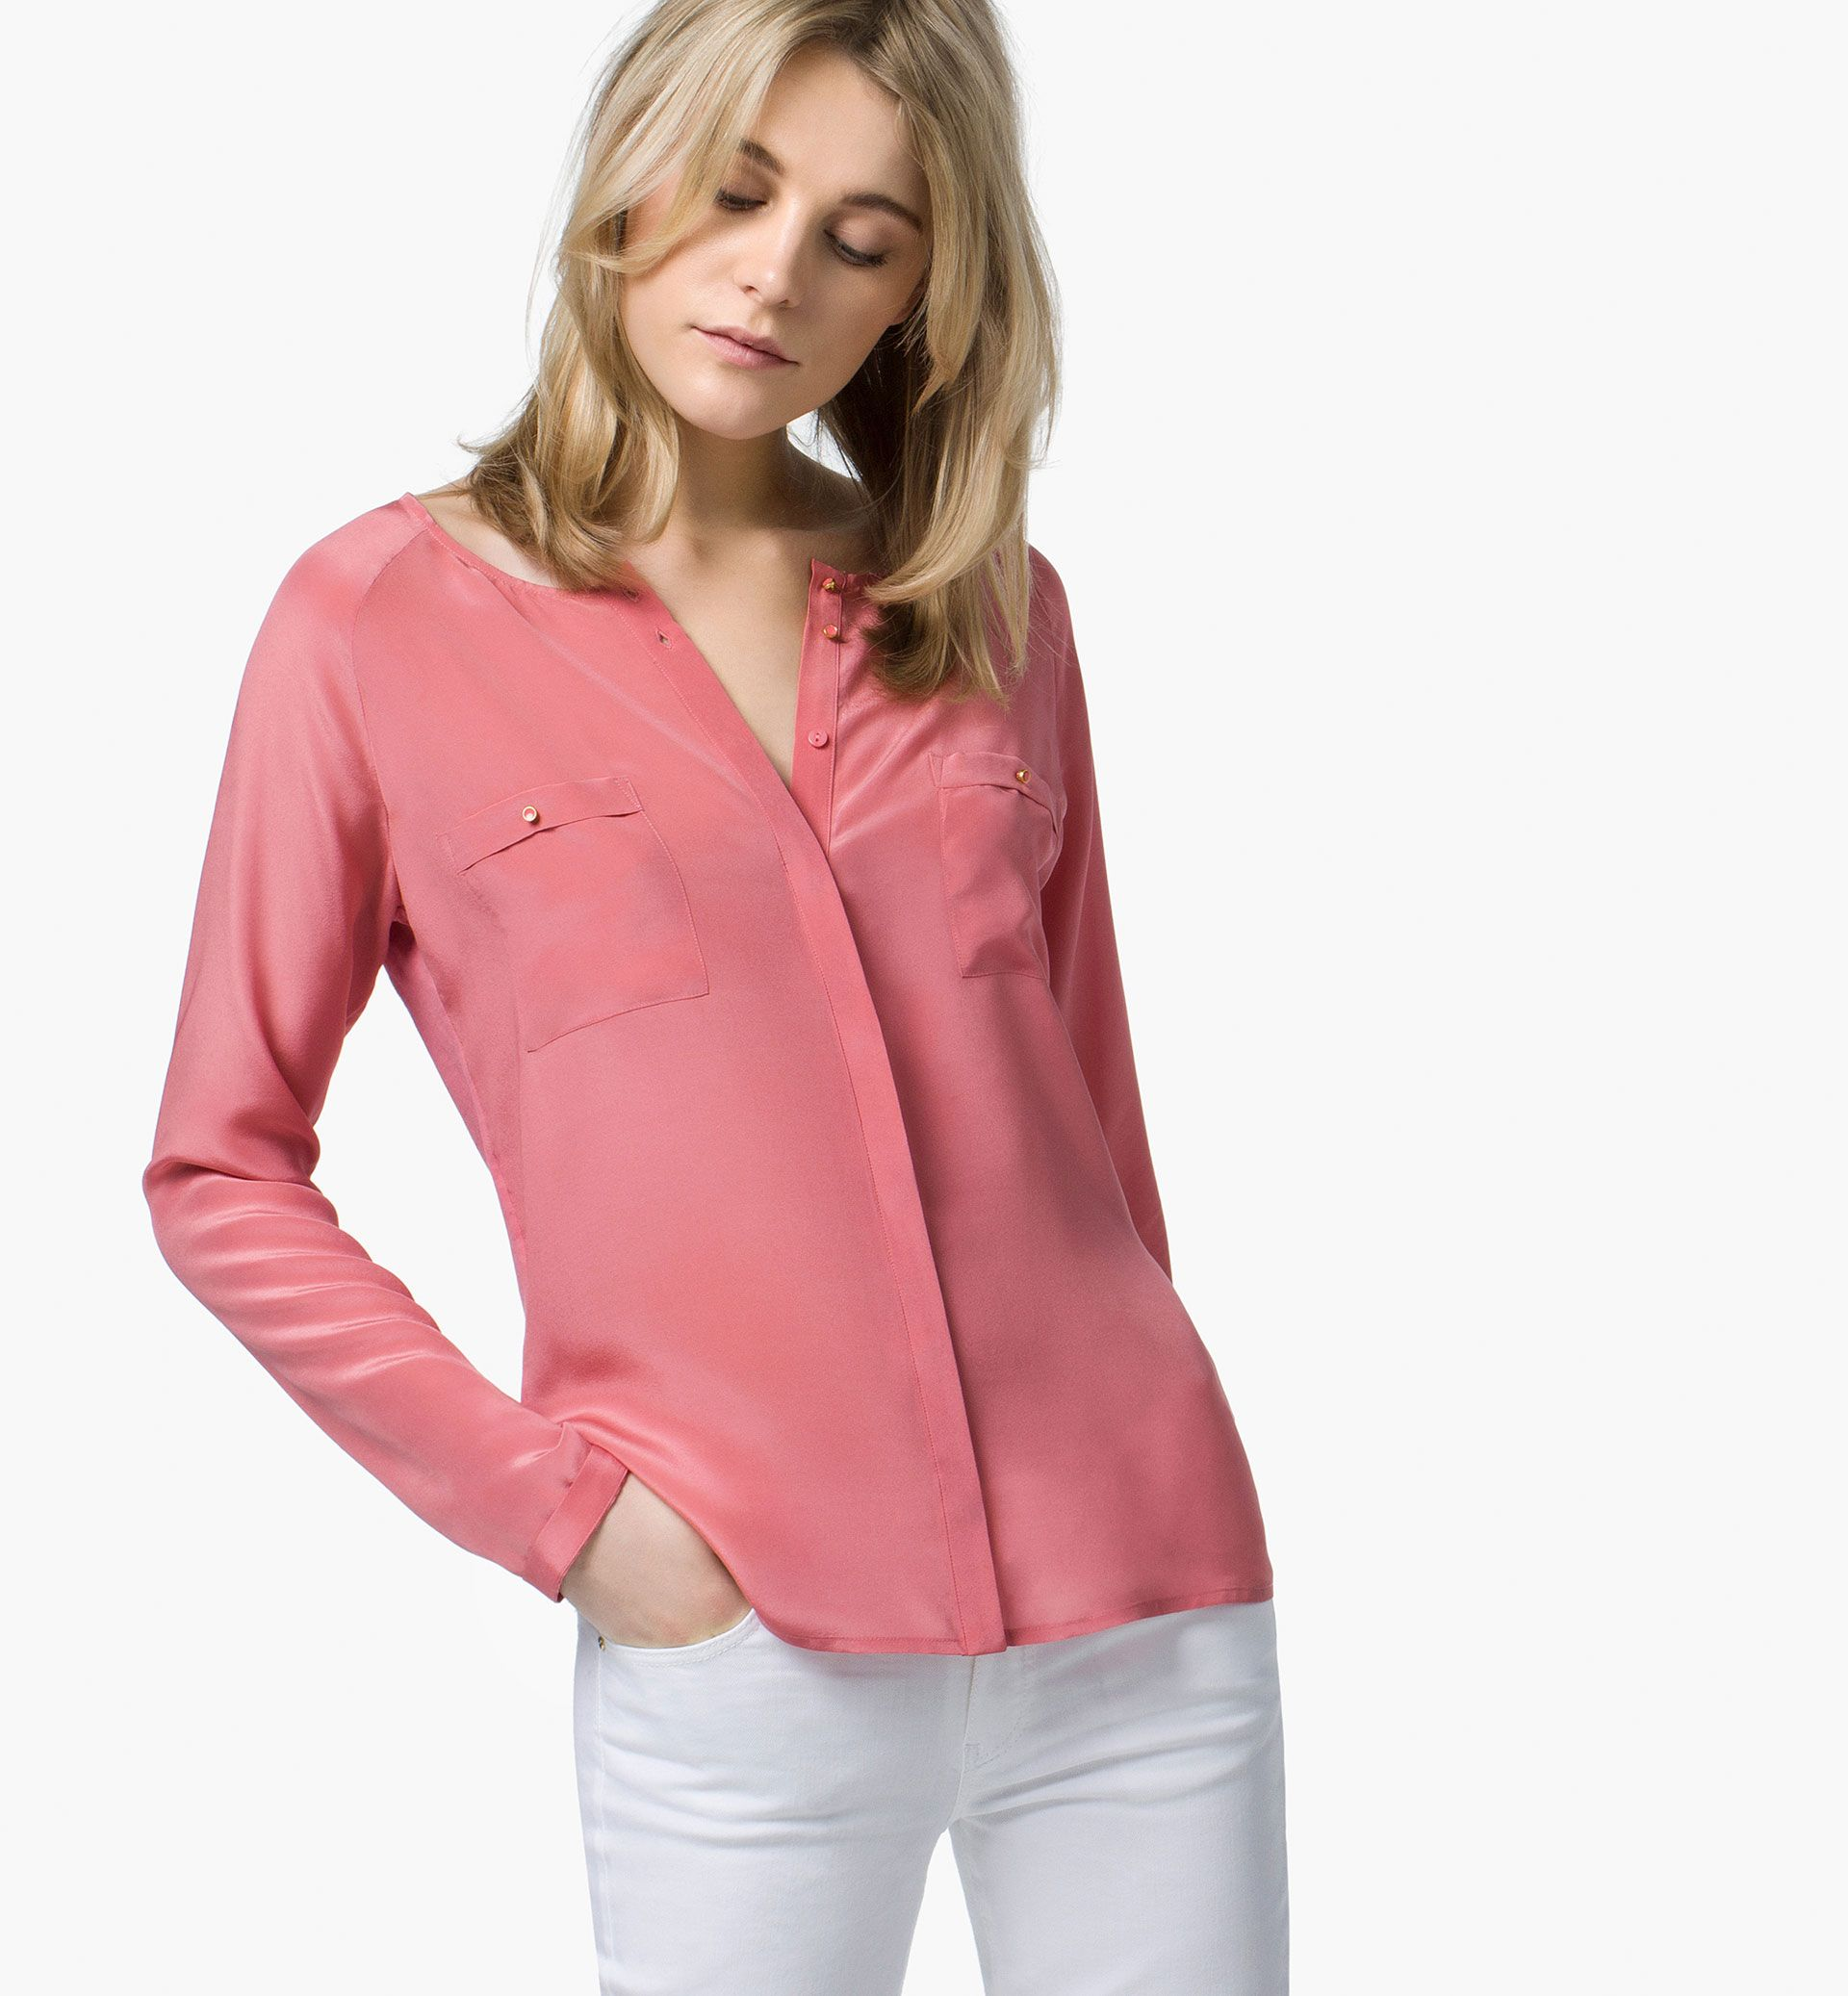 d0e5e3e6bb0aaa SILK FRONT T-SHIRT WITH POCKETS - T-shirts - WOMEN - Qatar - Massimo Dutti